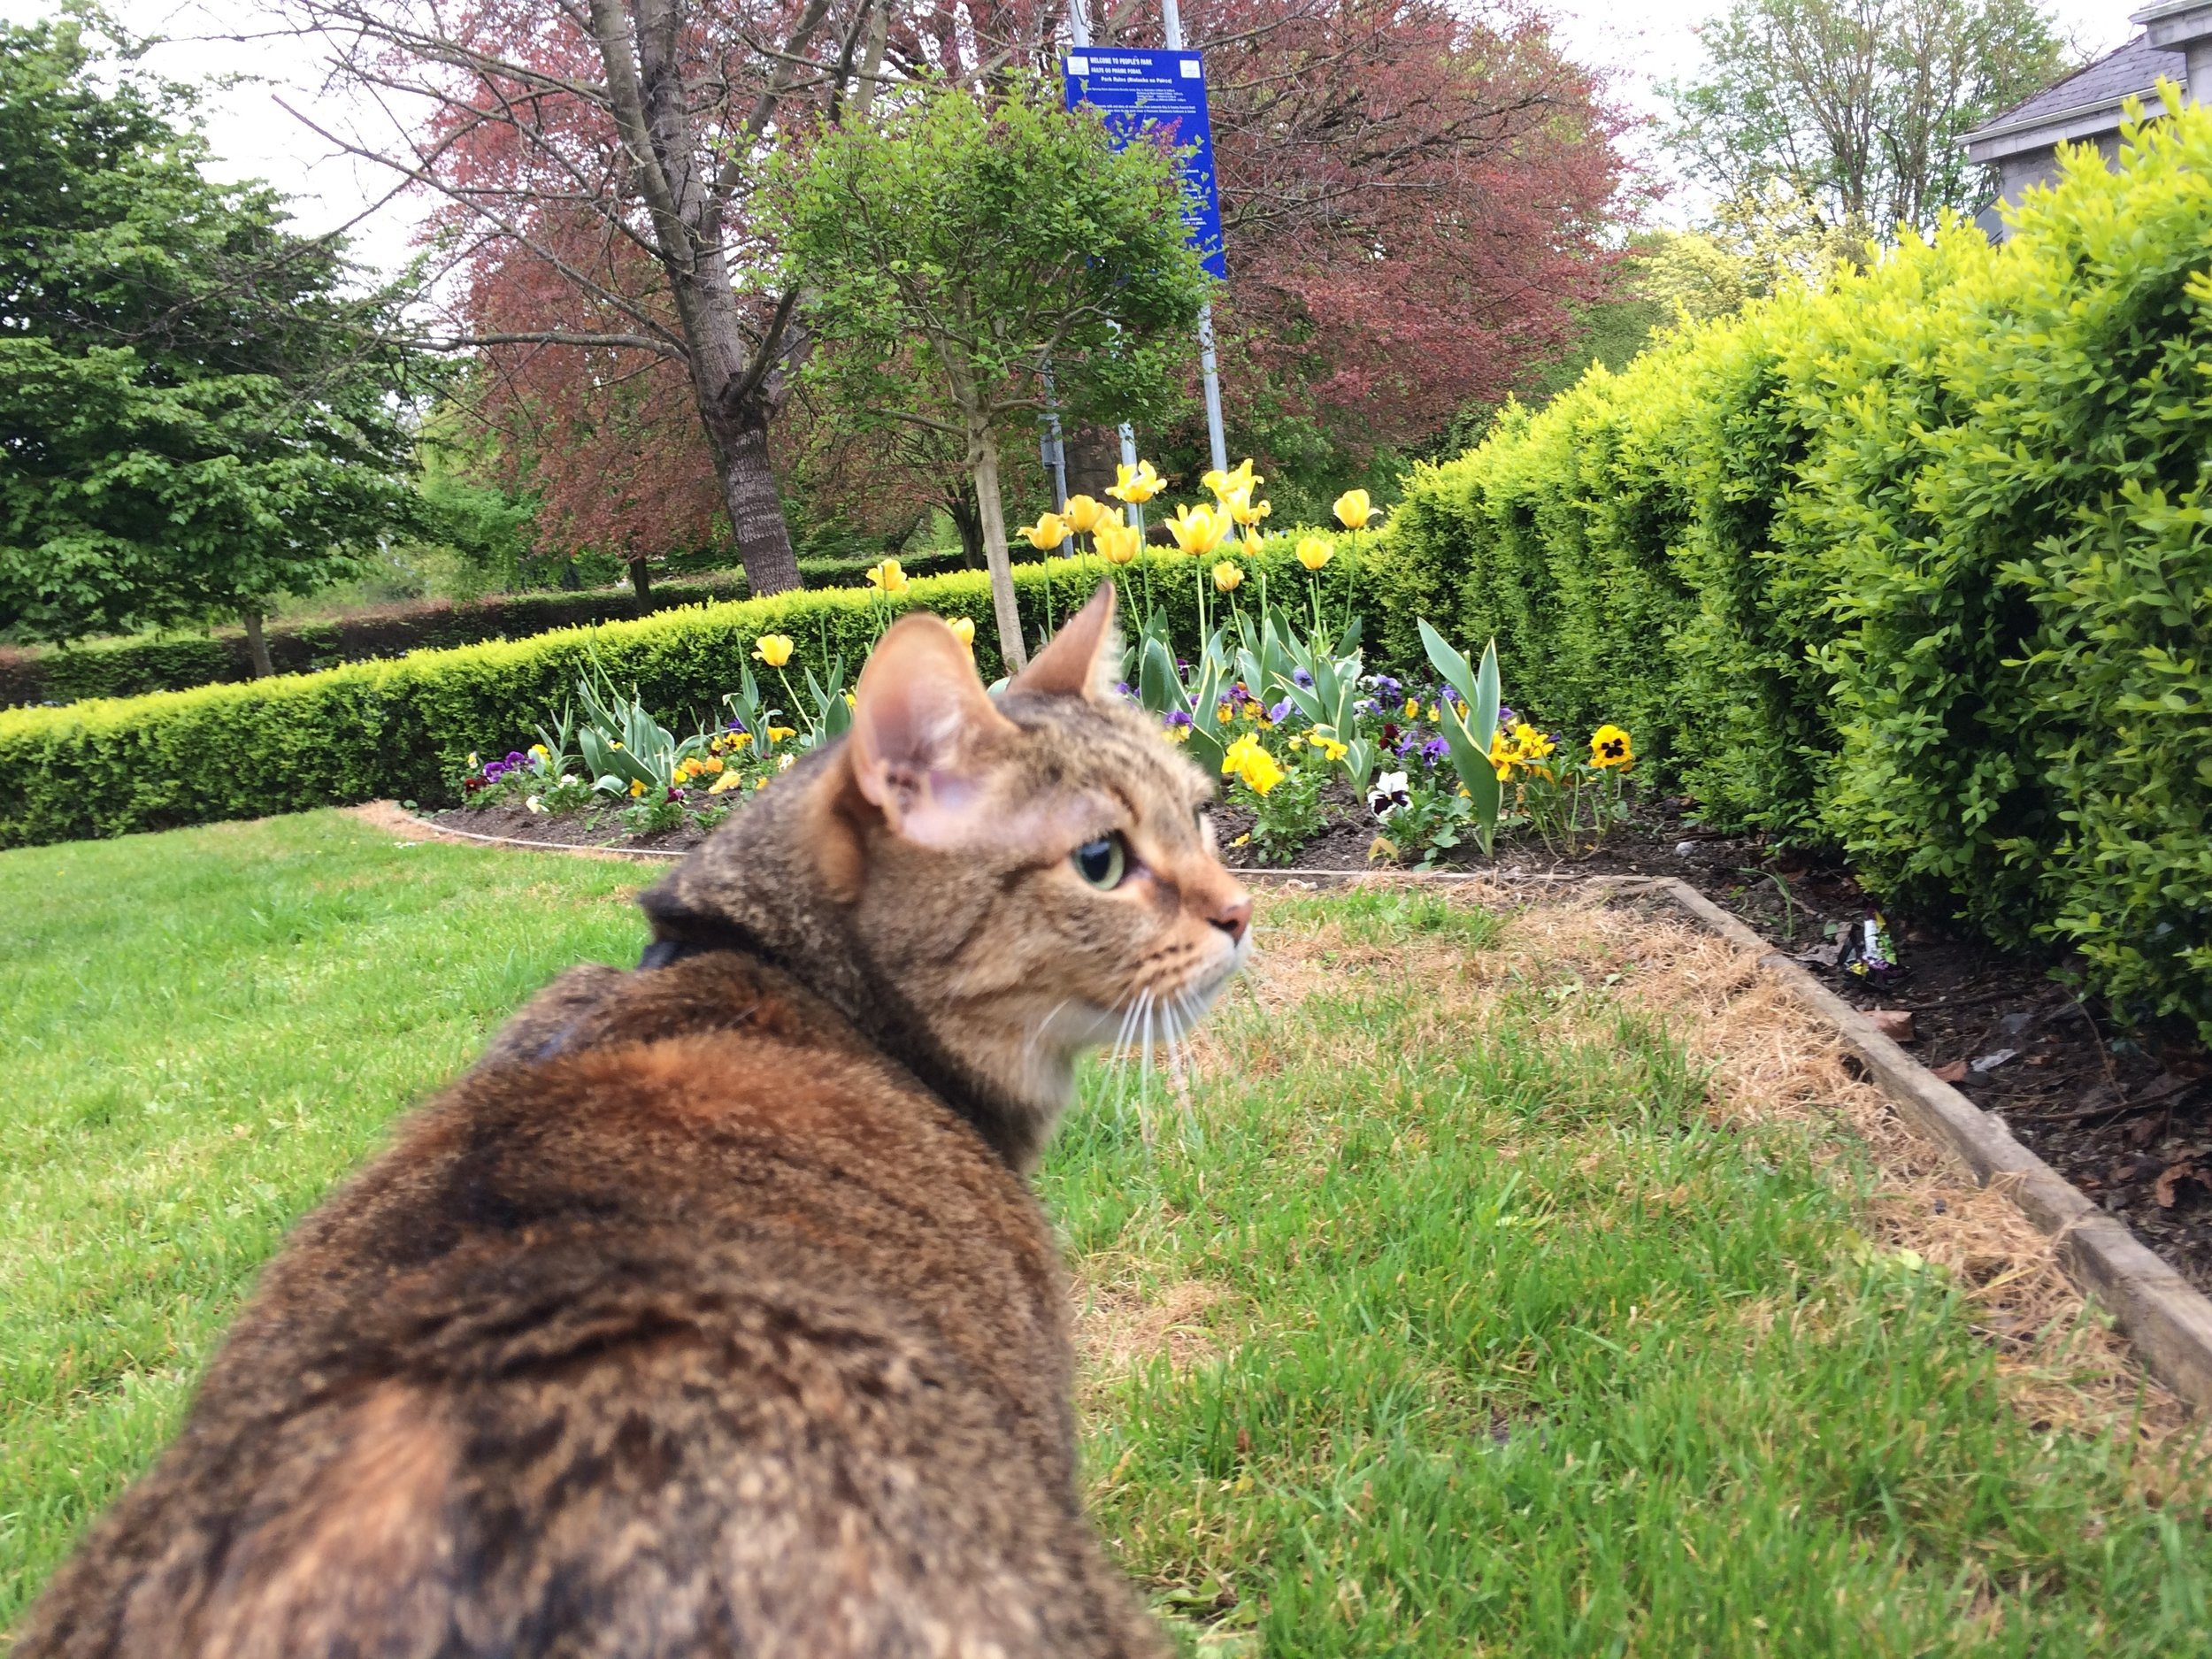 Recovery walk in People's Park, April 2017. Happy teeth! Happy kitty! Happy spring!